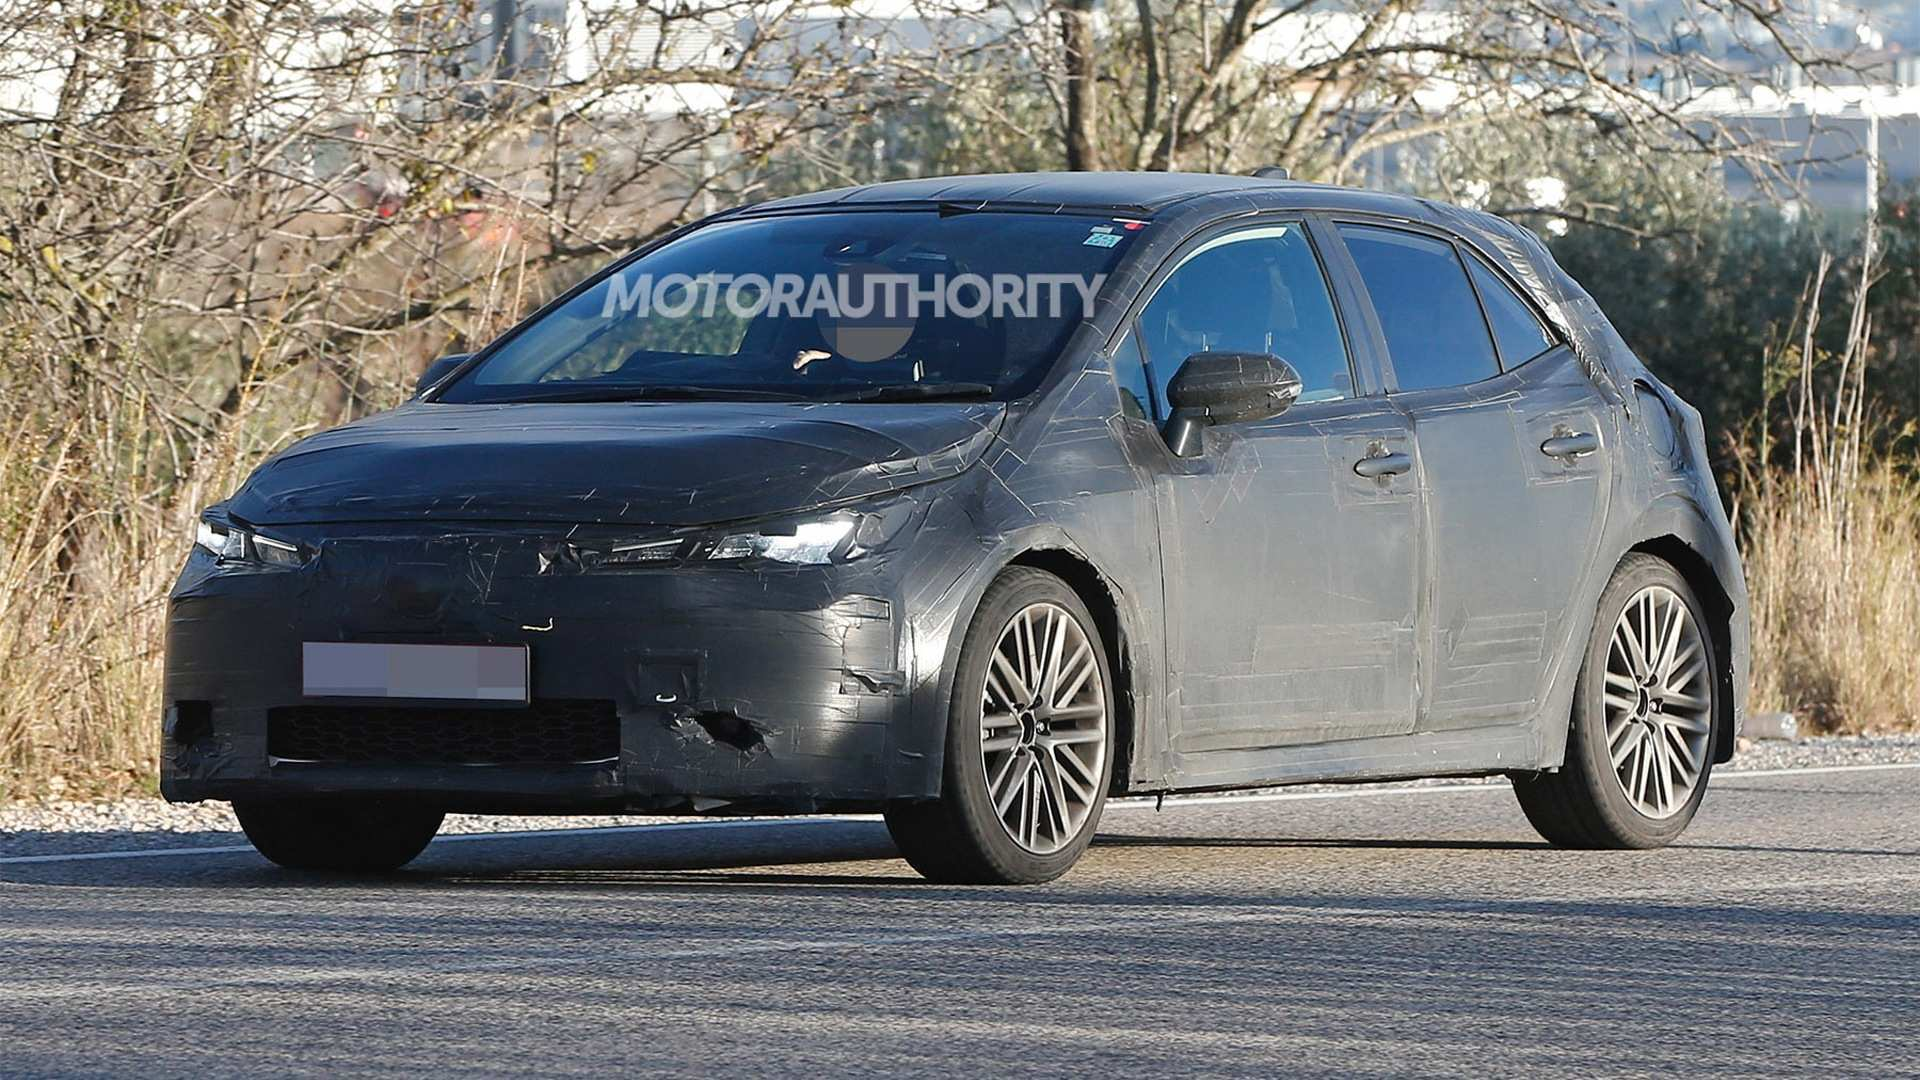 48 A 2019 New Toyota Avensis Spy Shots Images